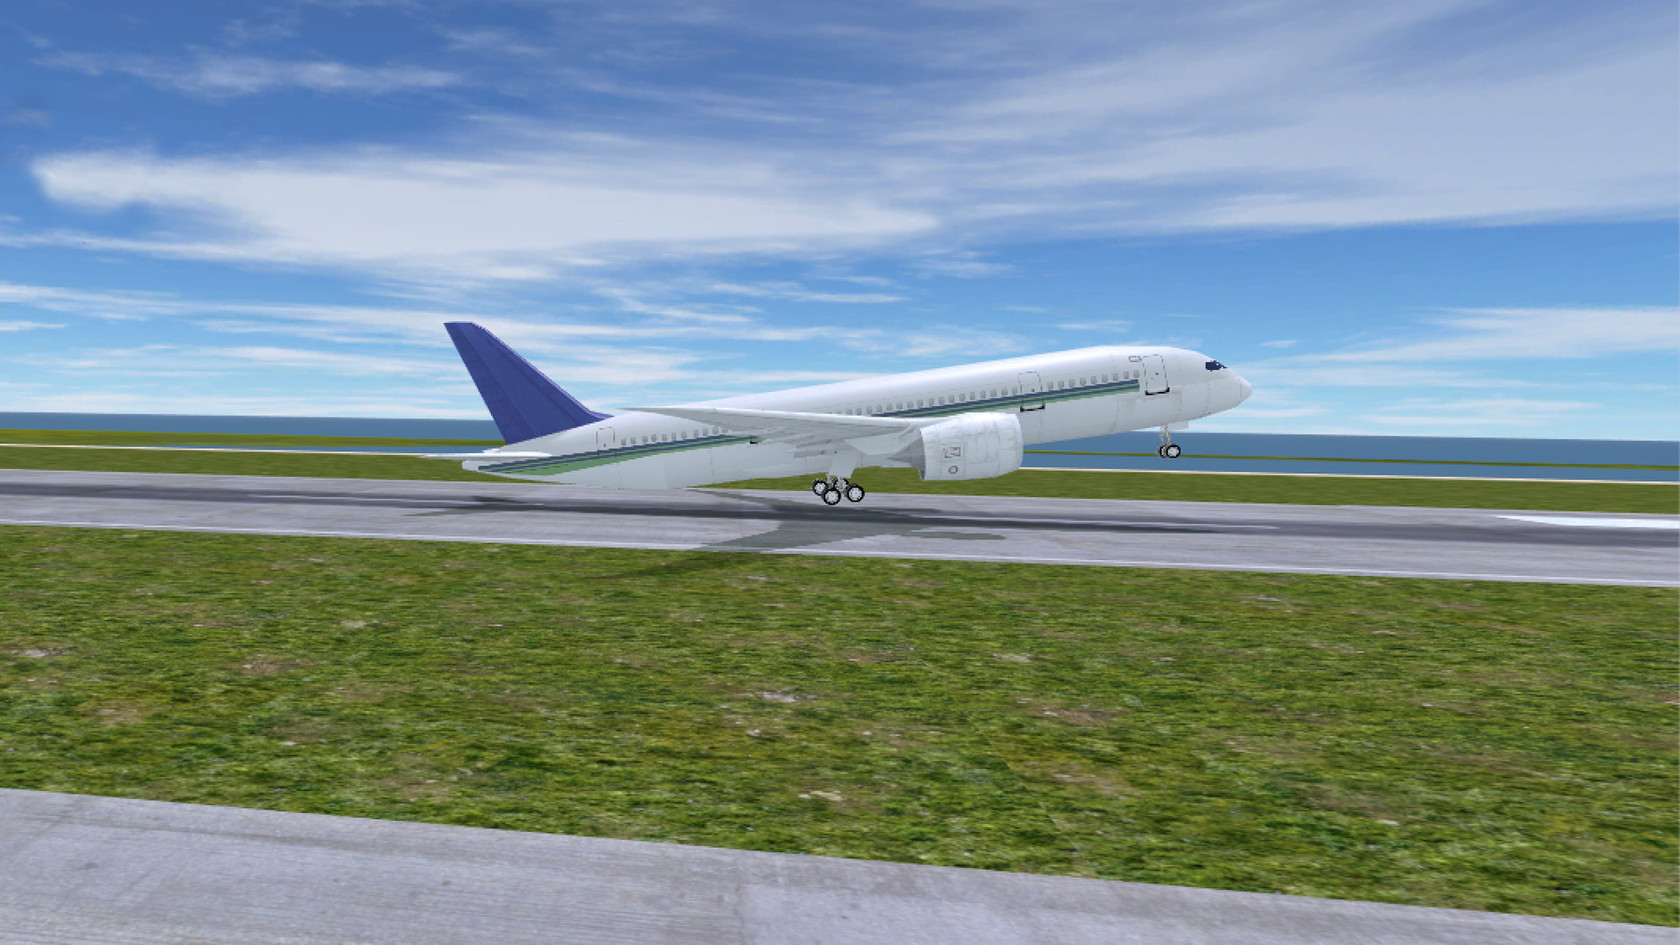 Download airport madness 5 torrent by mail1108 issuu.